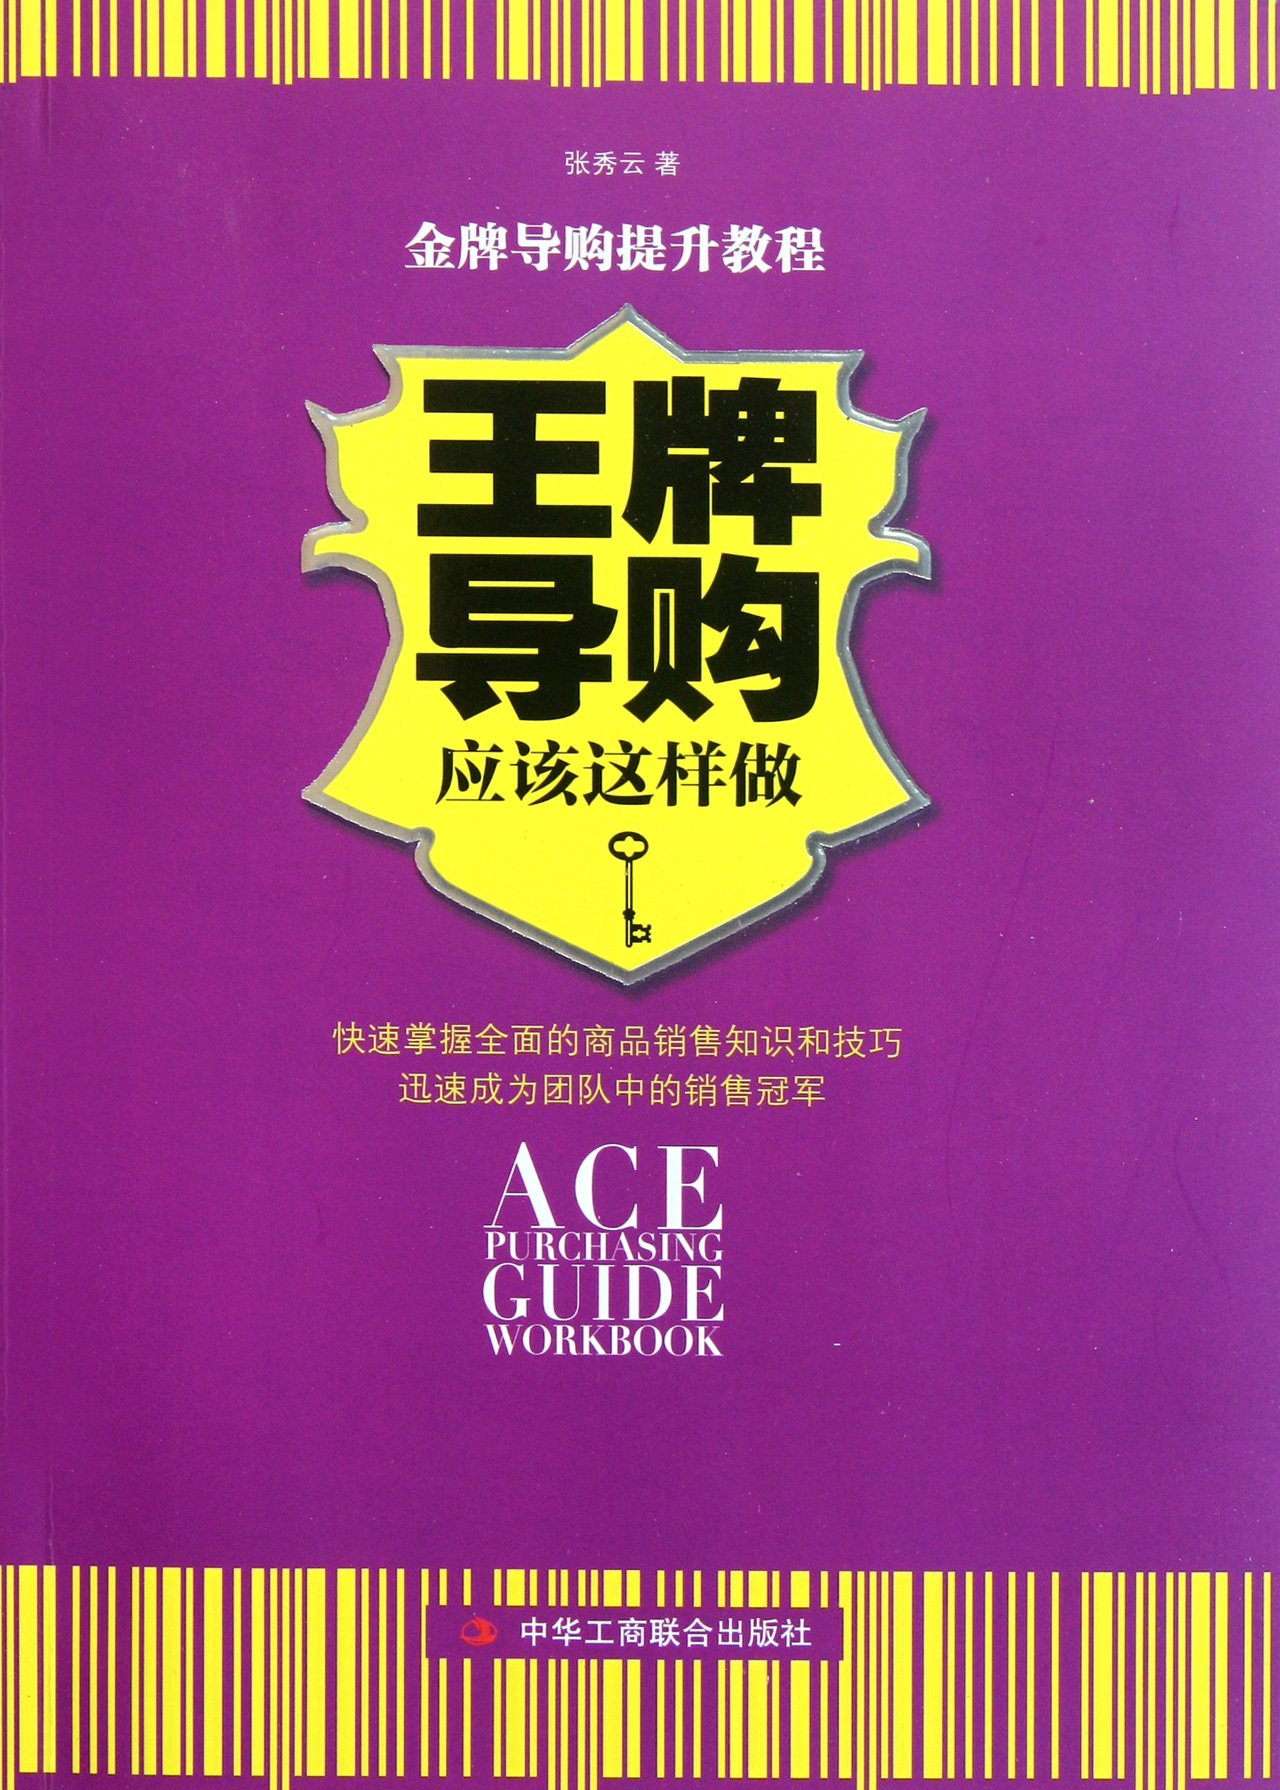 Read Online What does an ace shopping guide do? (Chinese Edition) ebook